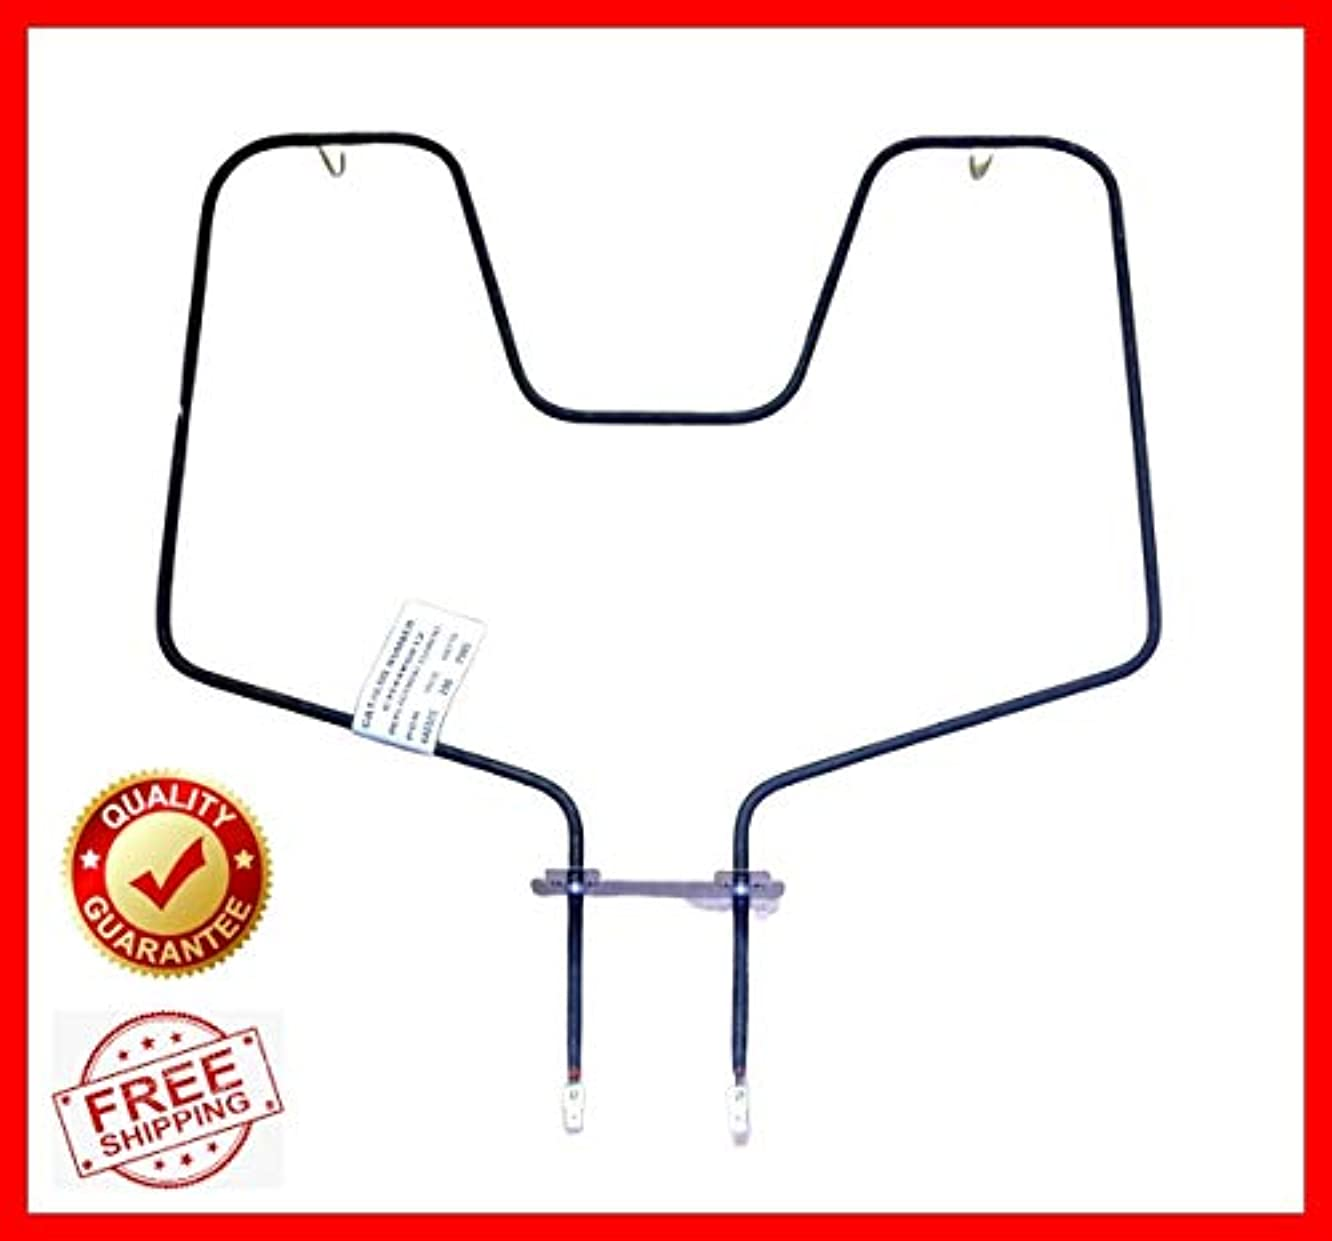 WB44K5012 for GE Electric Range Oven Bake Unit Lower Heating Element PS249247